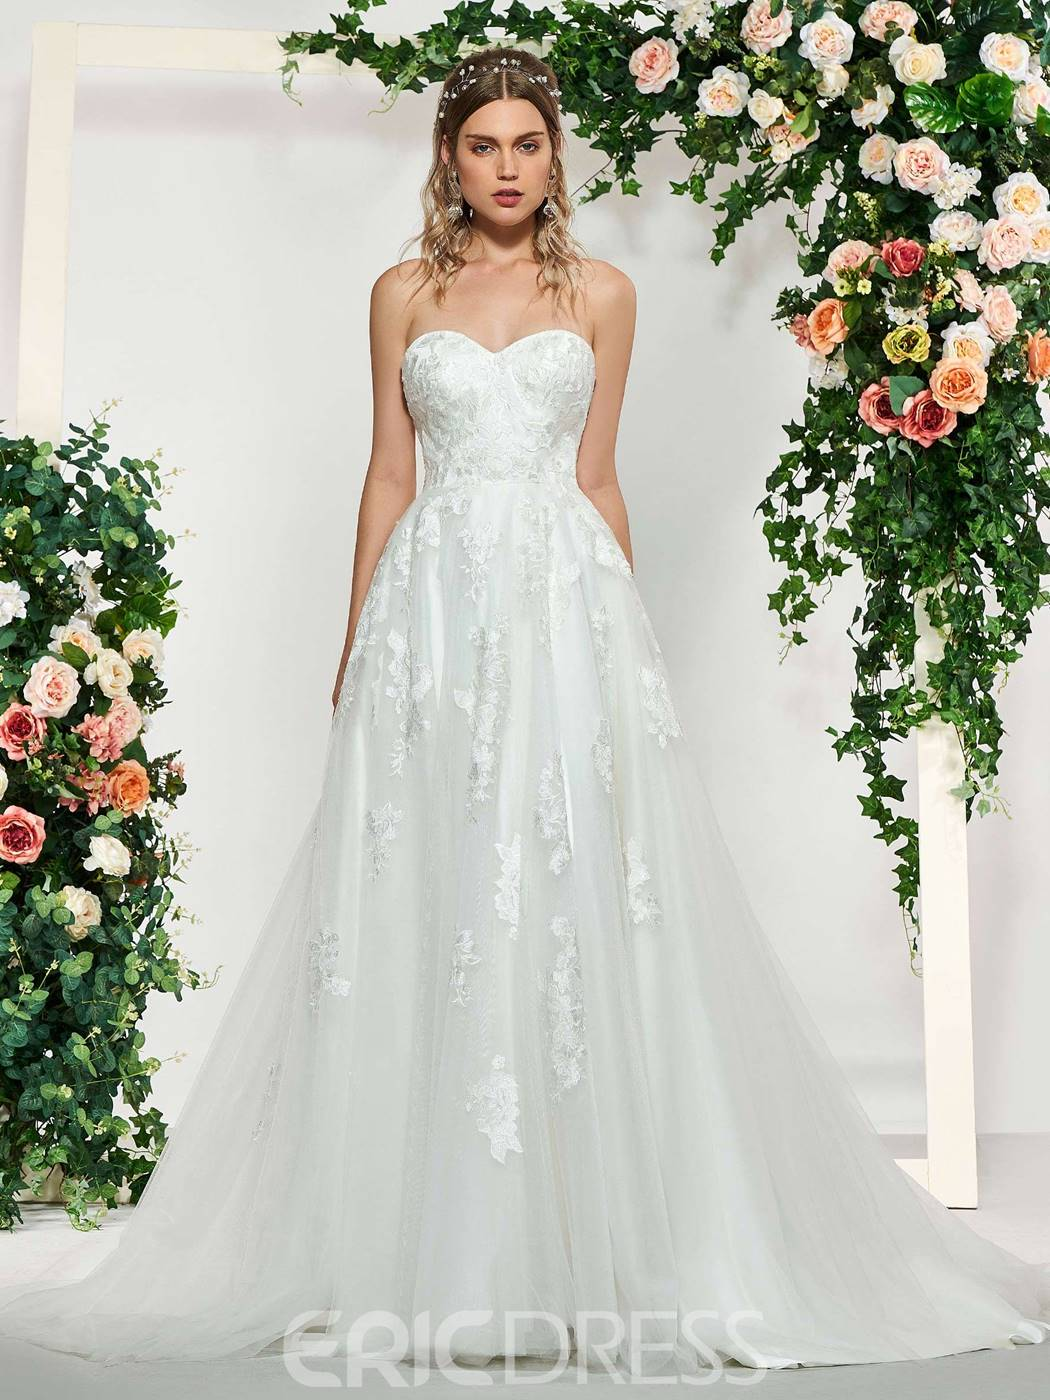 Ericdress 3/4 Sleeves Lace Off-The-Shoulder Wedding Dress 2019